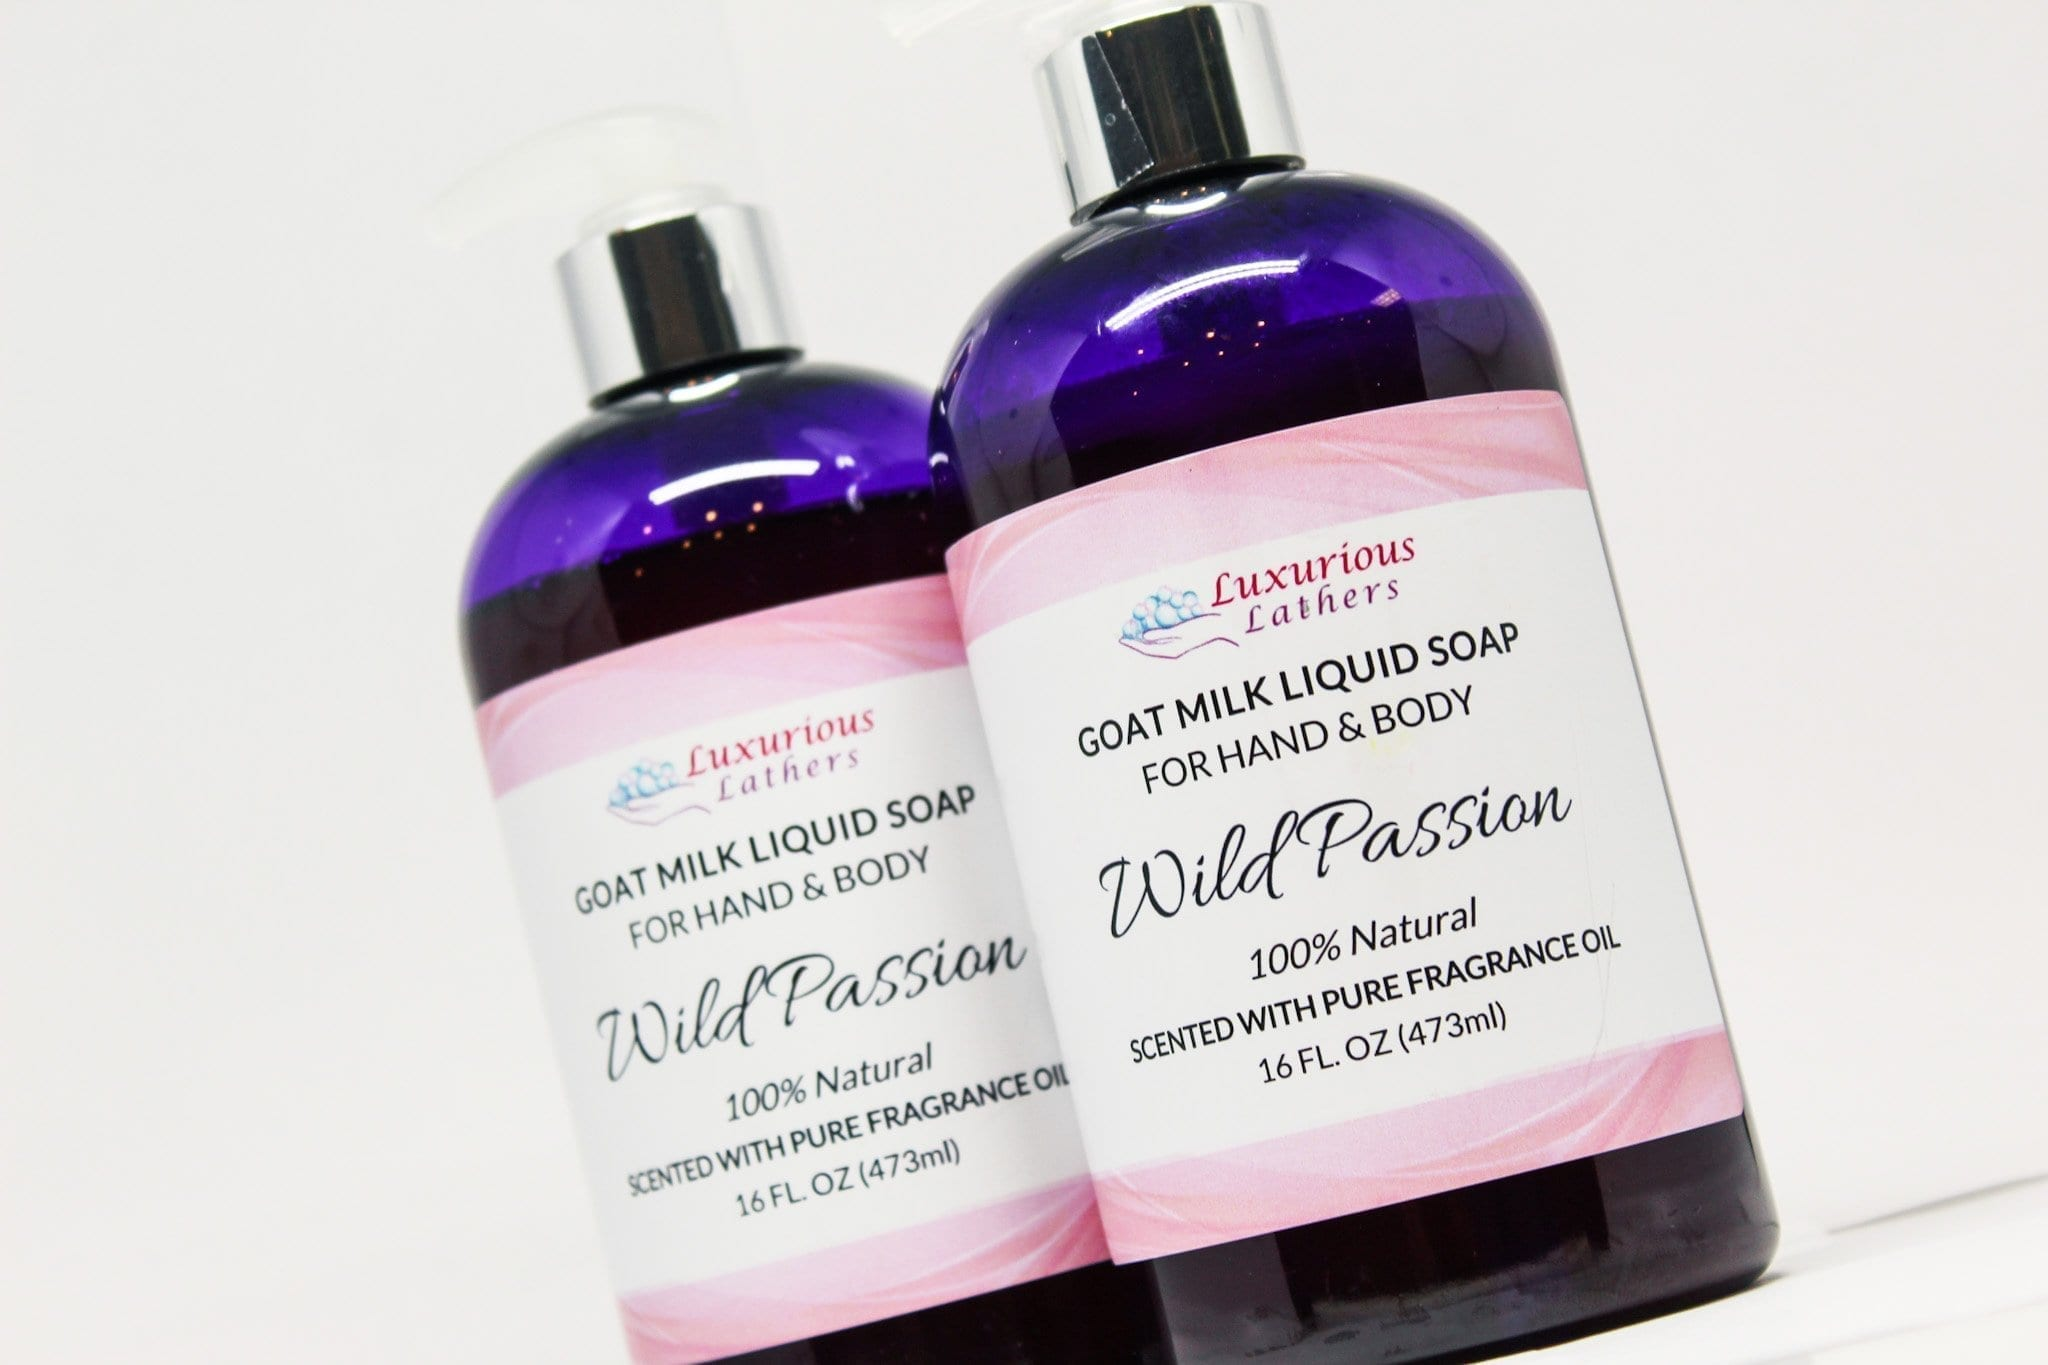 Wild Passion Goat Milk Liquid Soap